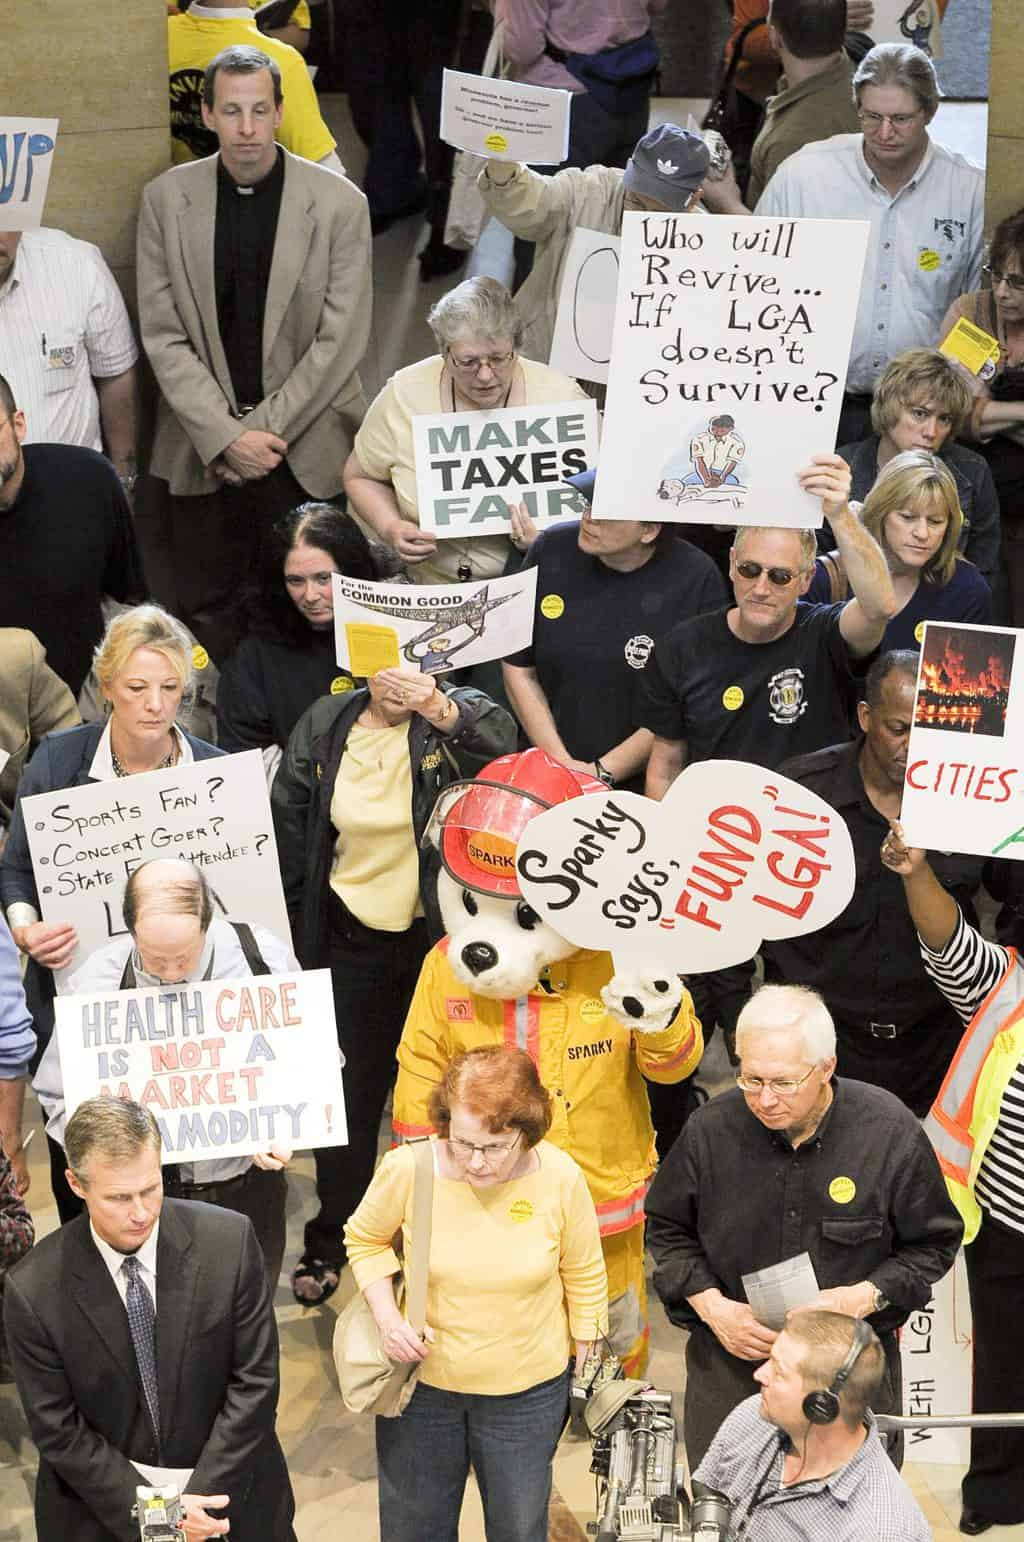 United States: Three state-level campaigns to increase income taxes on the rich